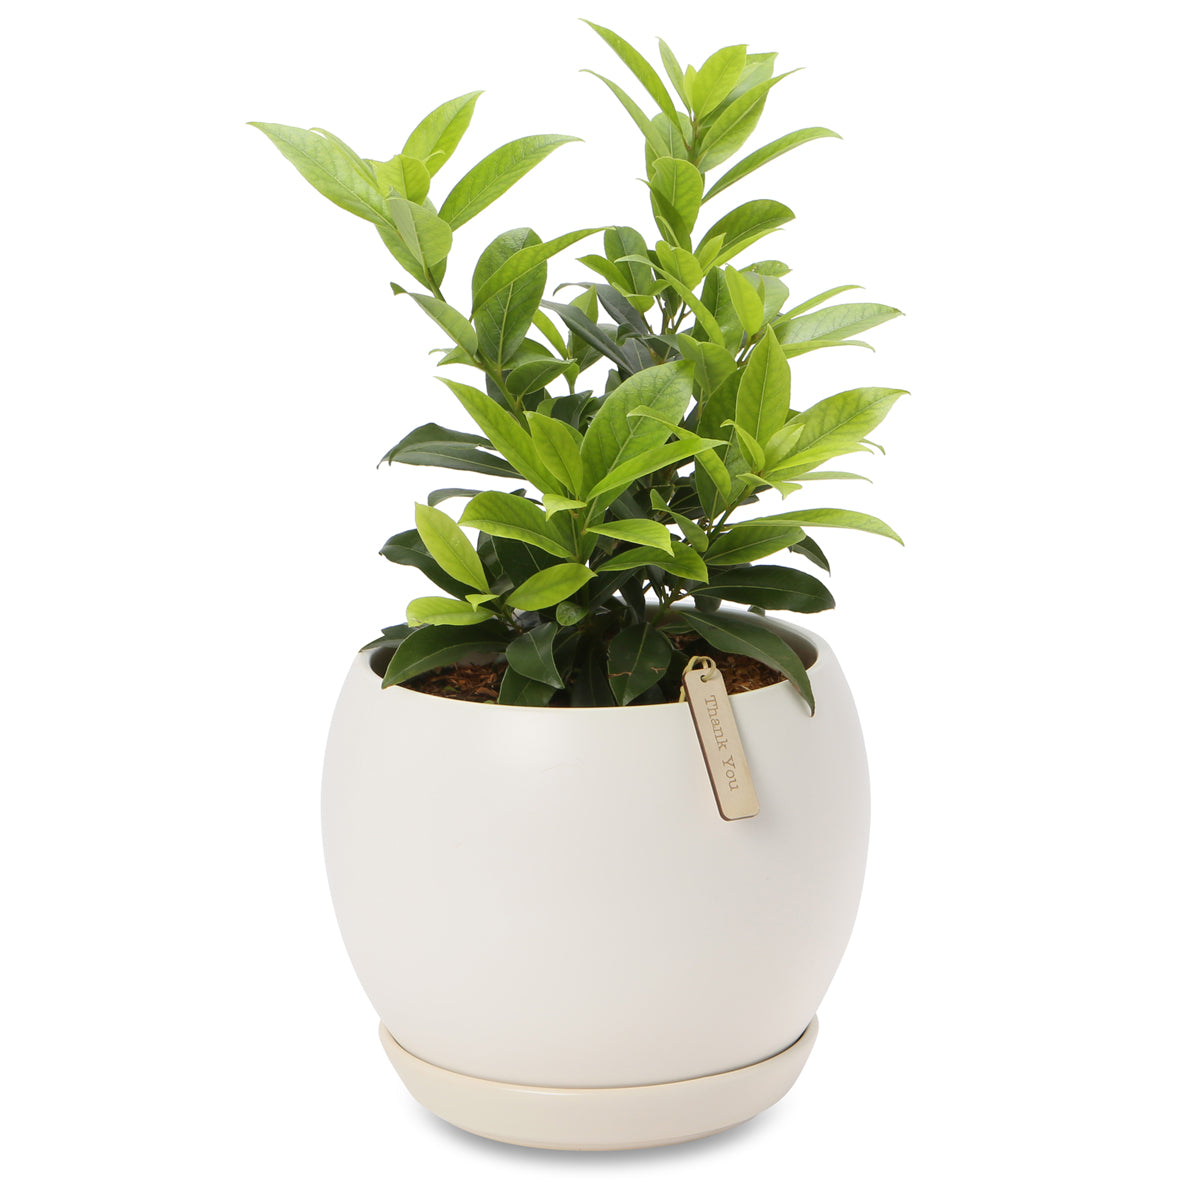 Potted Aromatic Bay laurel trees